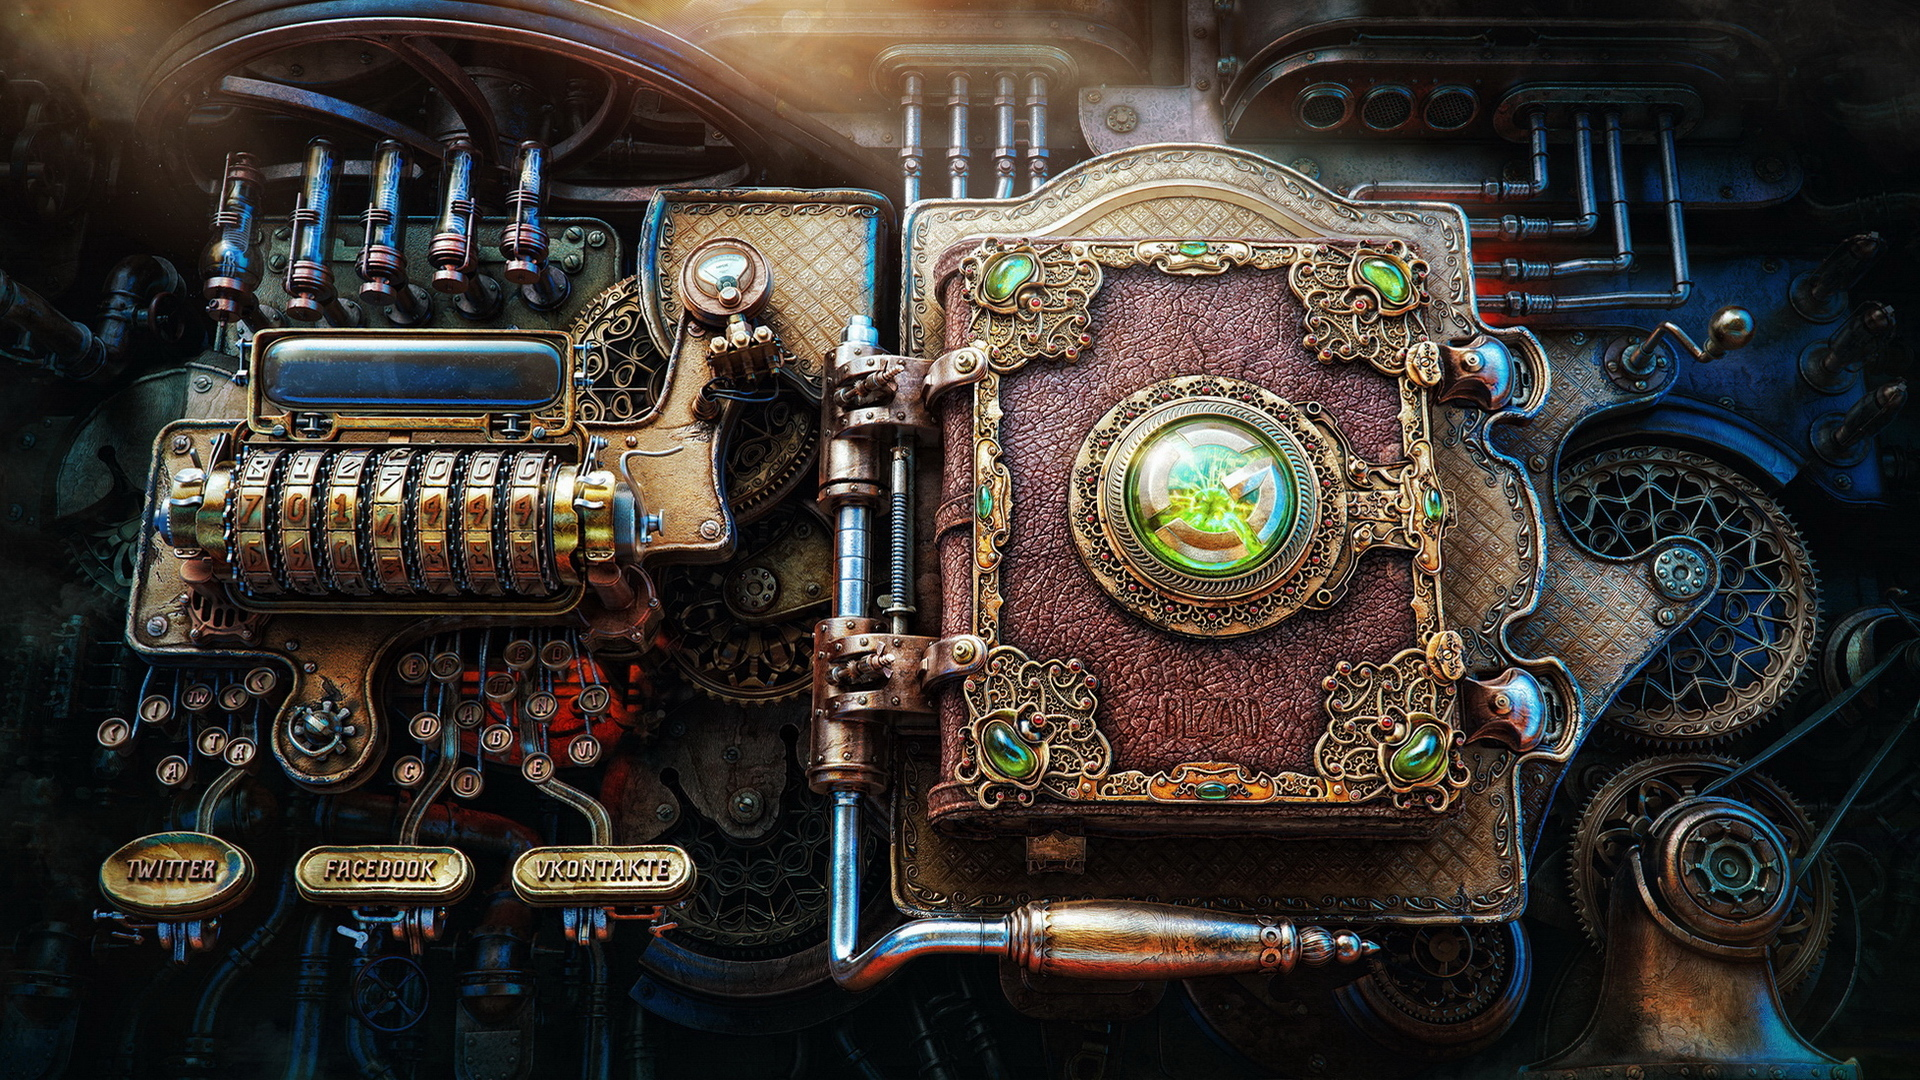 Technics Creative Steampunk Book Fantasy wallpaper 1920x1080 1920x1080